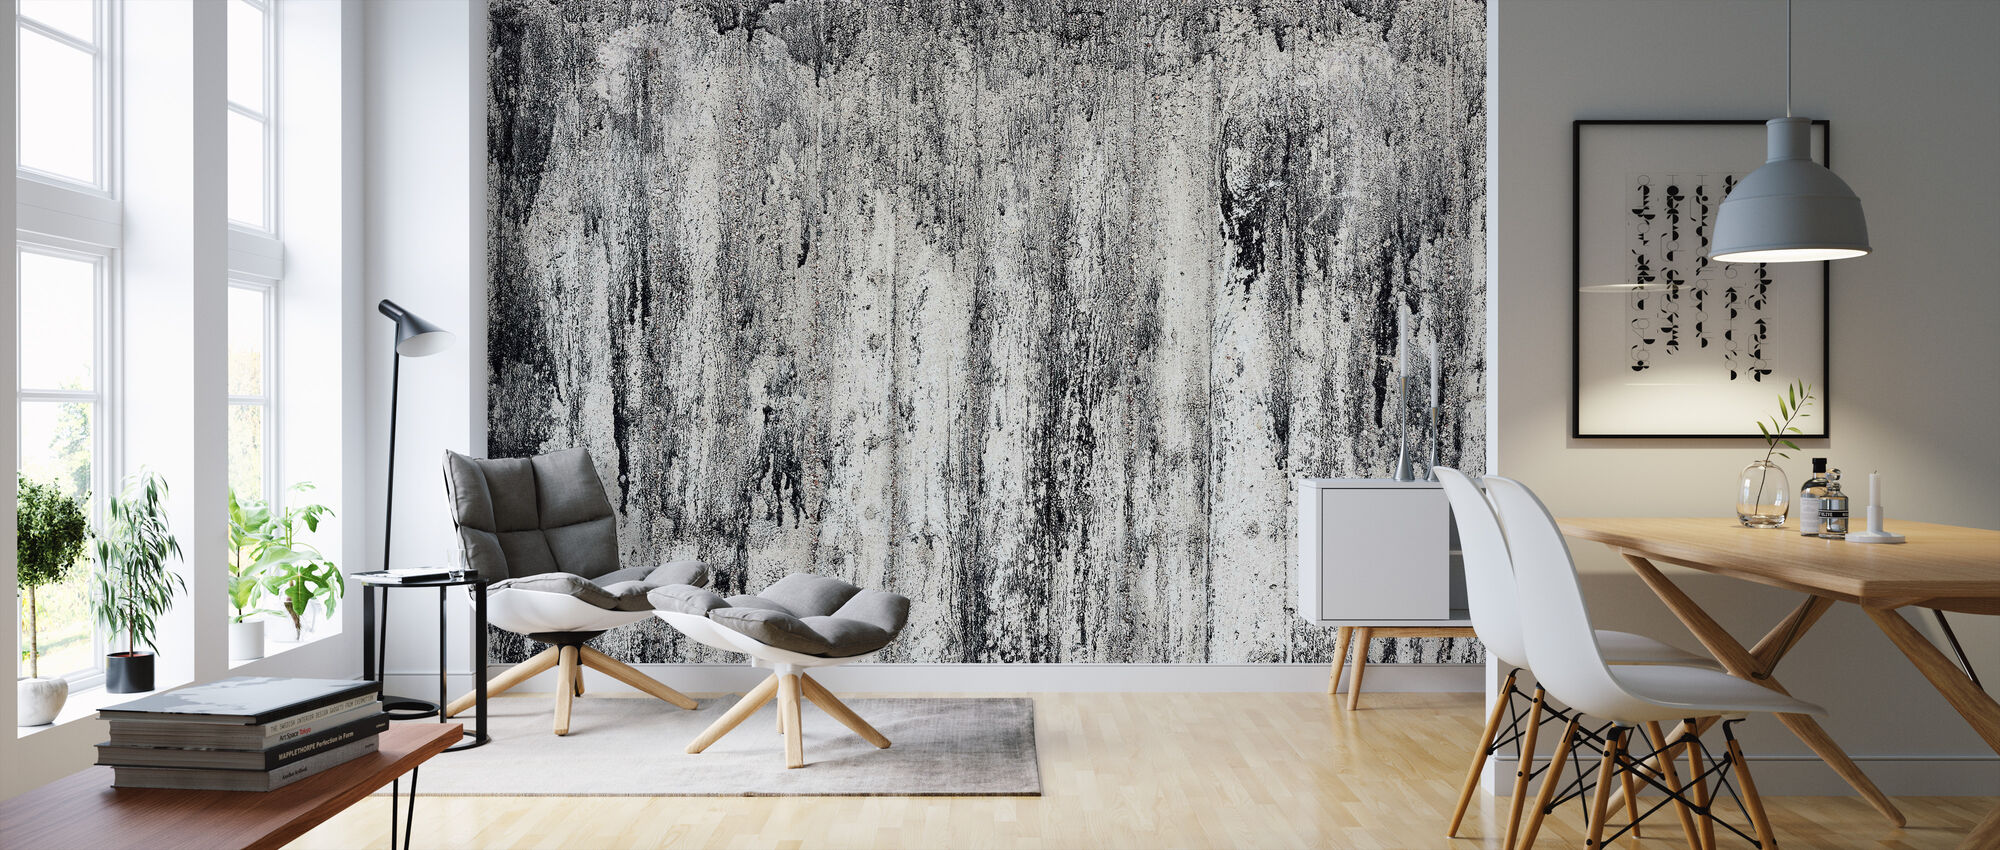 Black Cement Wall - Wallpaper - Living Room